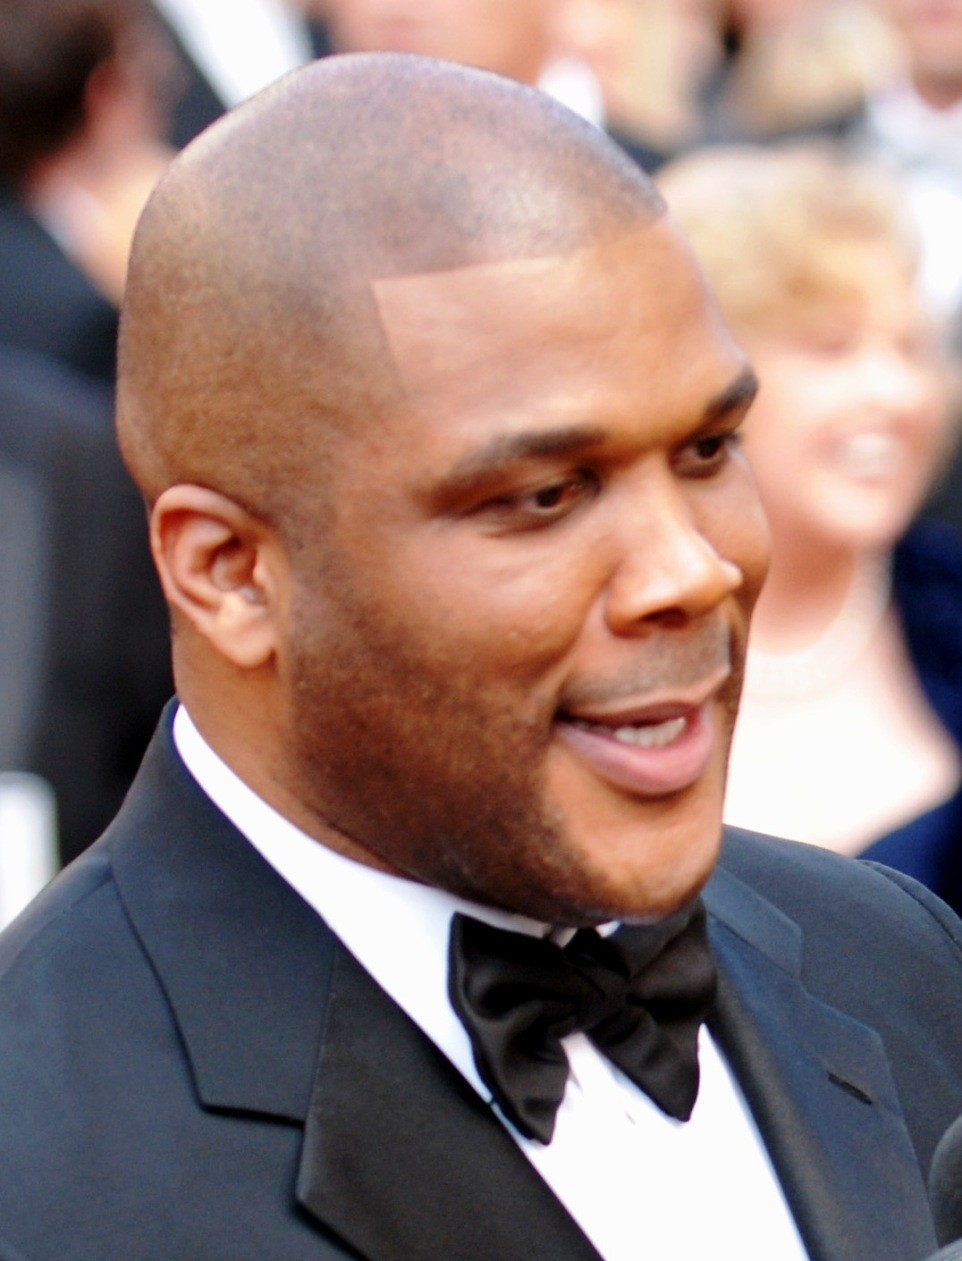 82nd_academy_awards_tyler_perry_-_army_mil-66455-2010-03-09-180359_cropped